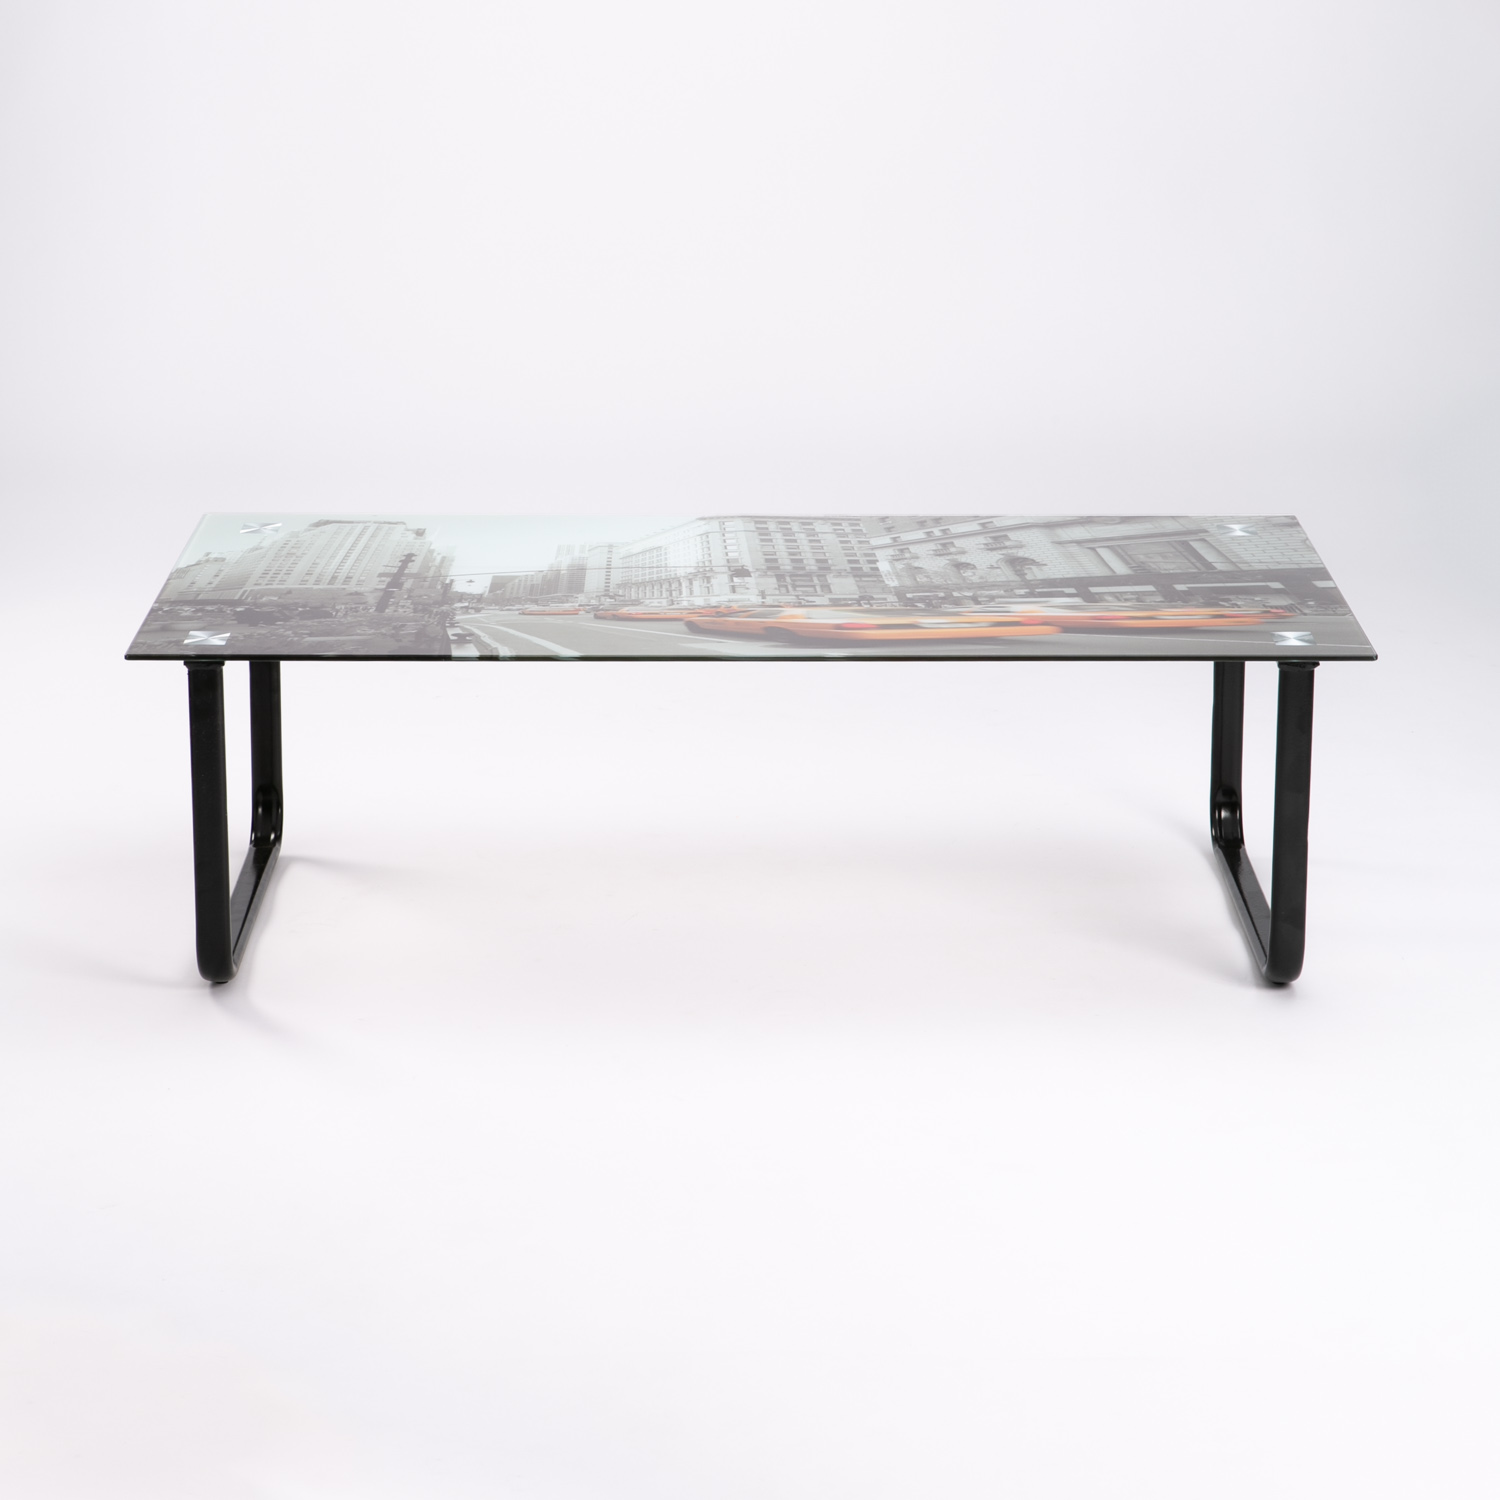 Decofurn Furniture New York 105x55cm Tempered Glass Coffee Table